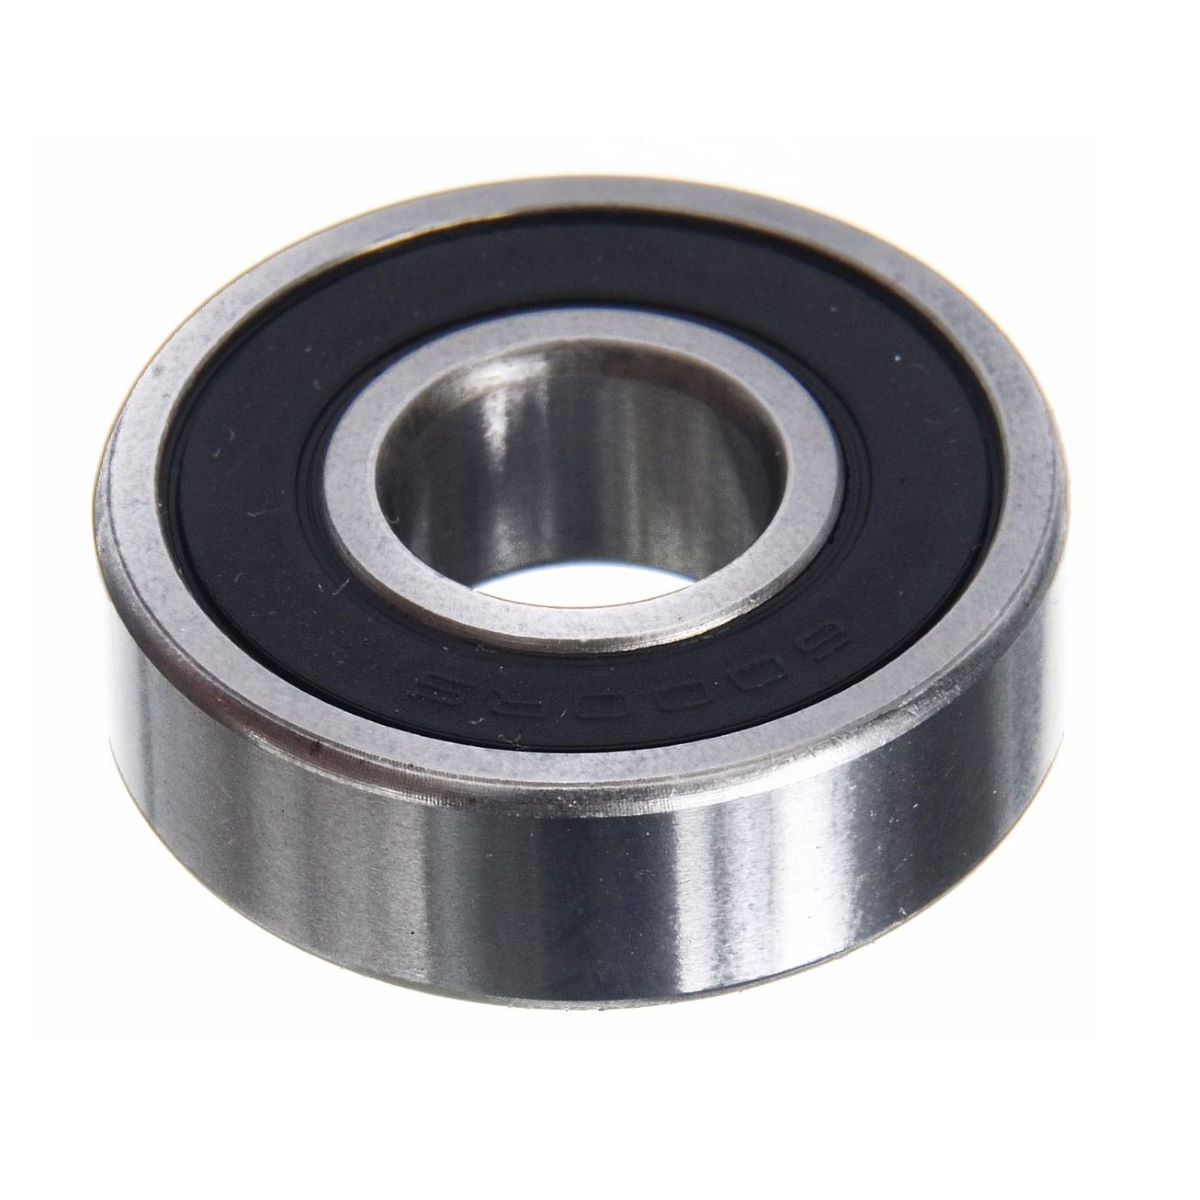 Brand-X Brand-X Sealed Bearing - 6000 2RS Bearing   Wheel Hub Spares